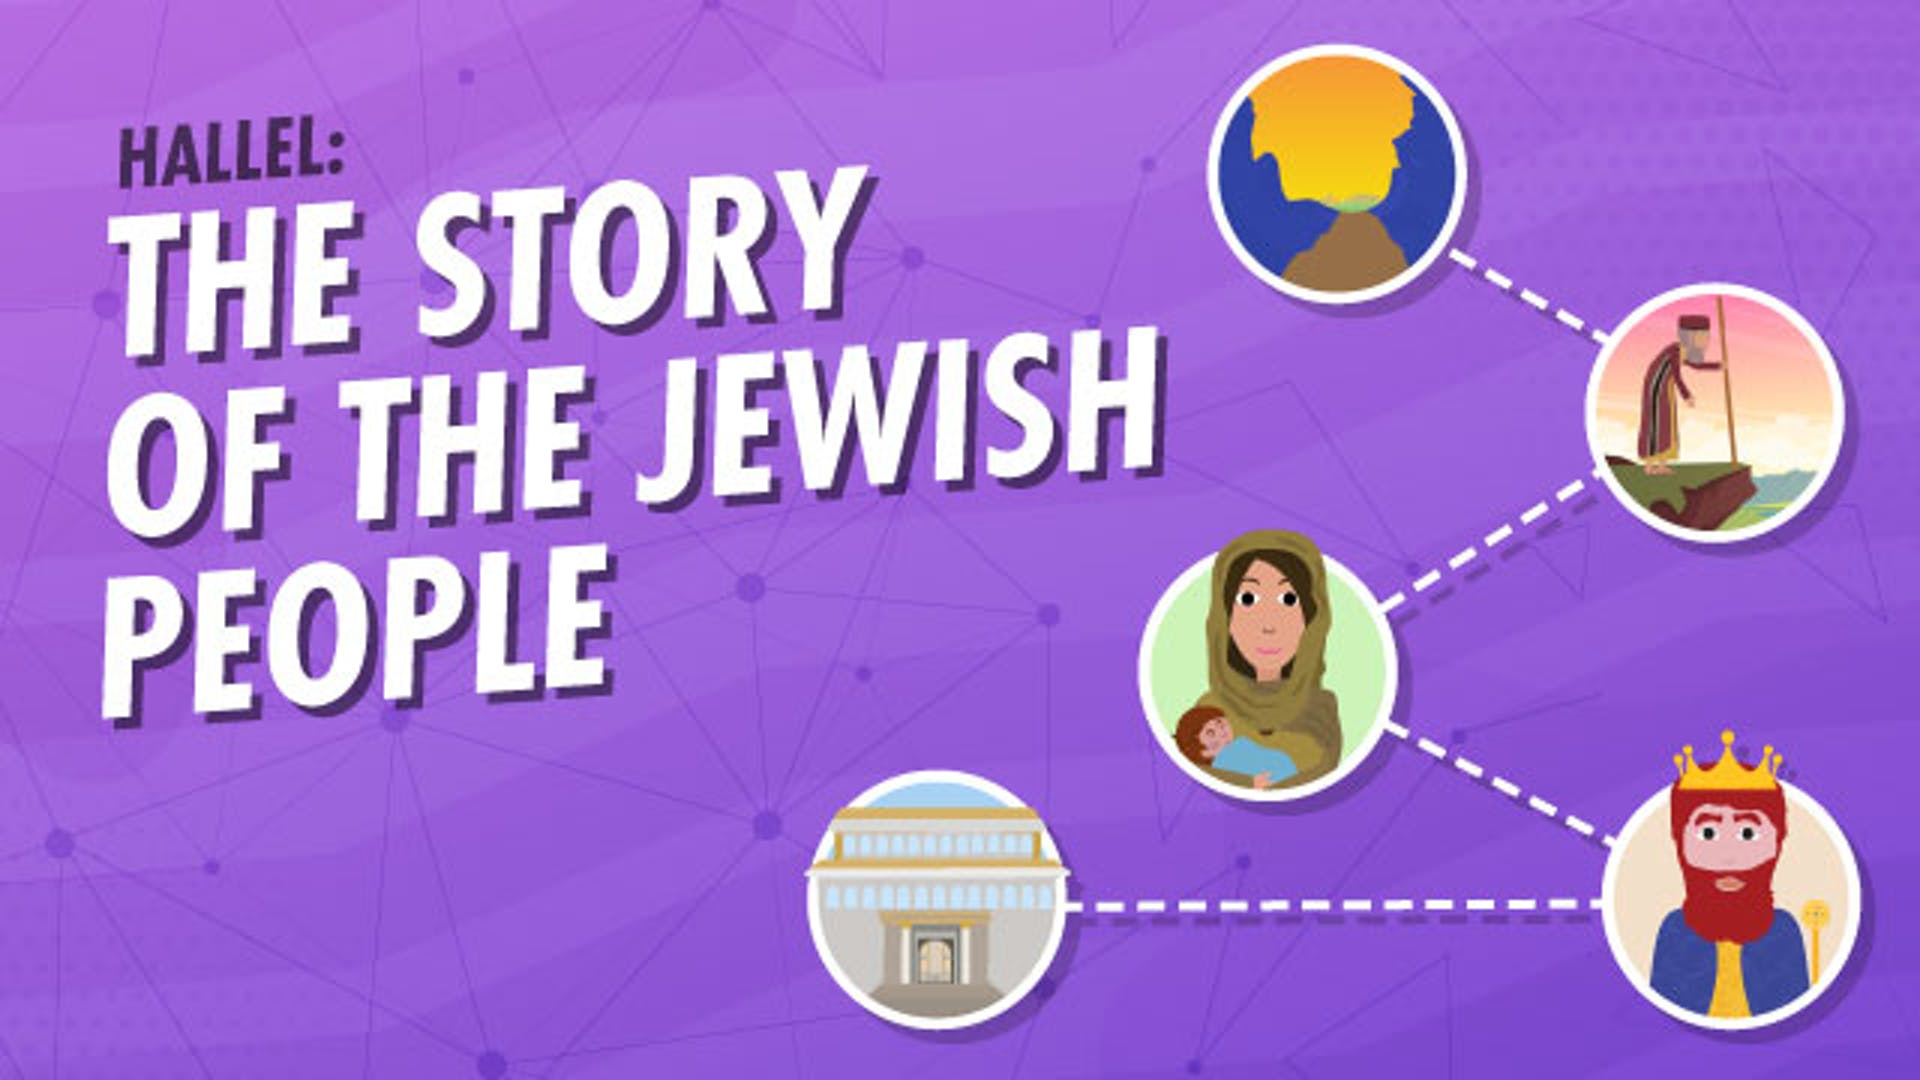 Hallel meaning Jewish people story